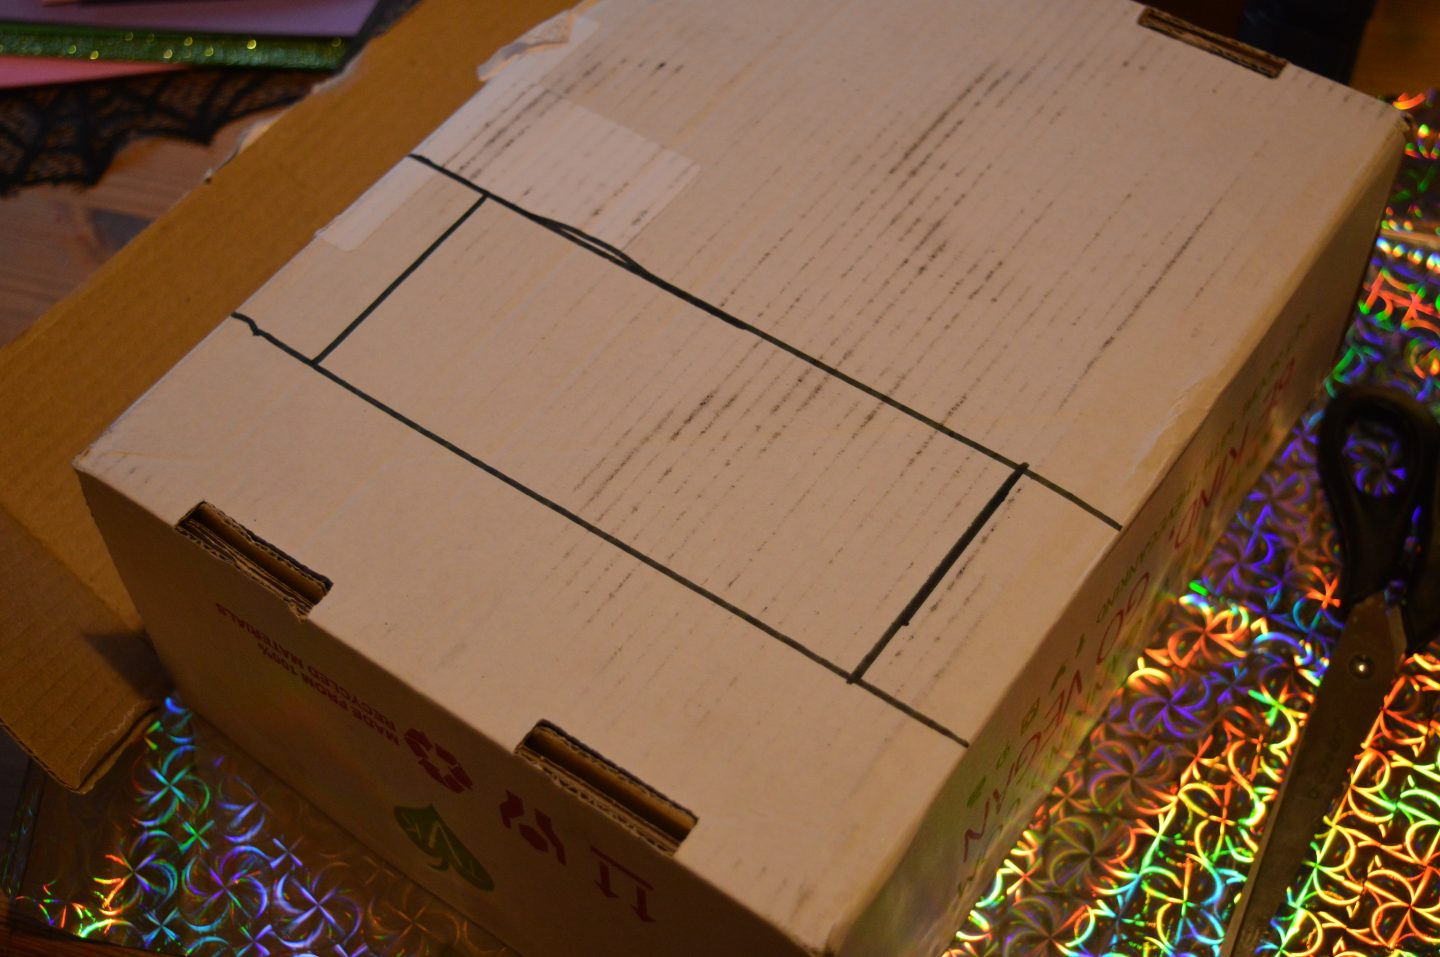 Make a Sweetie Robot Craft cardboard box with mouth area drawn in a black outline